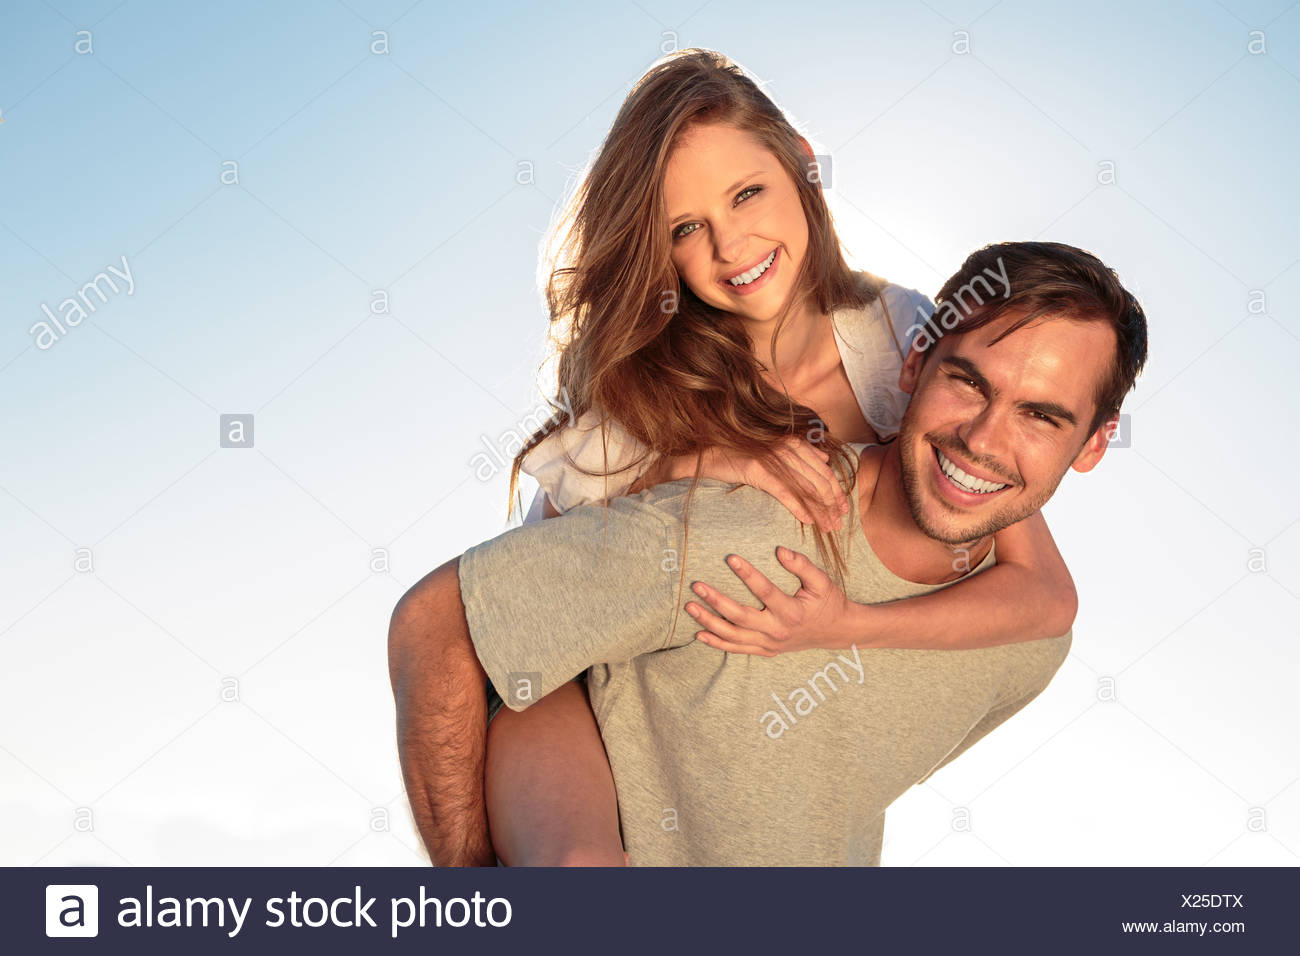 Man giving a piggy back to his girlfriend - Stock Image